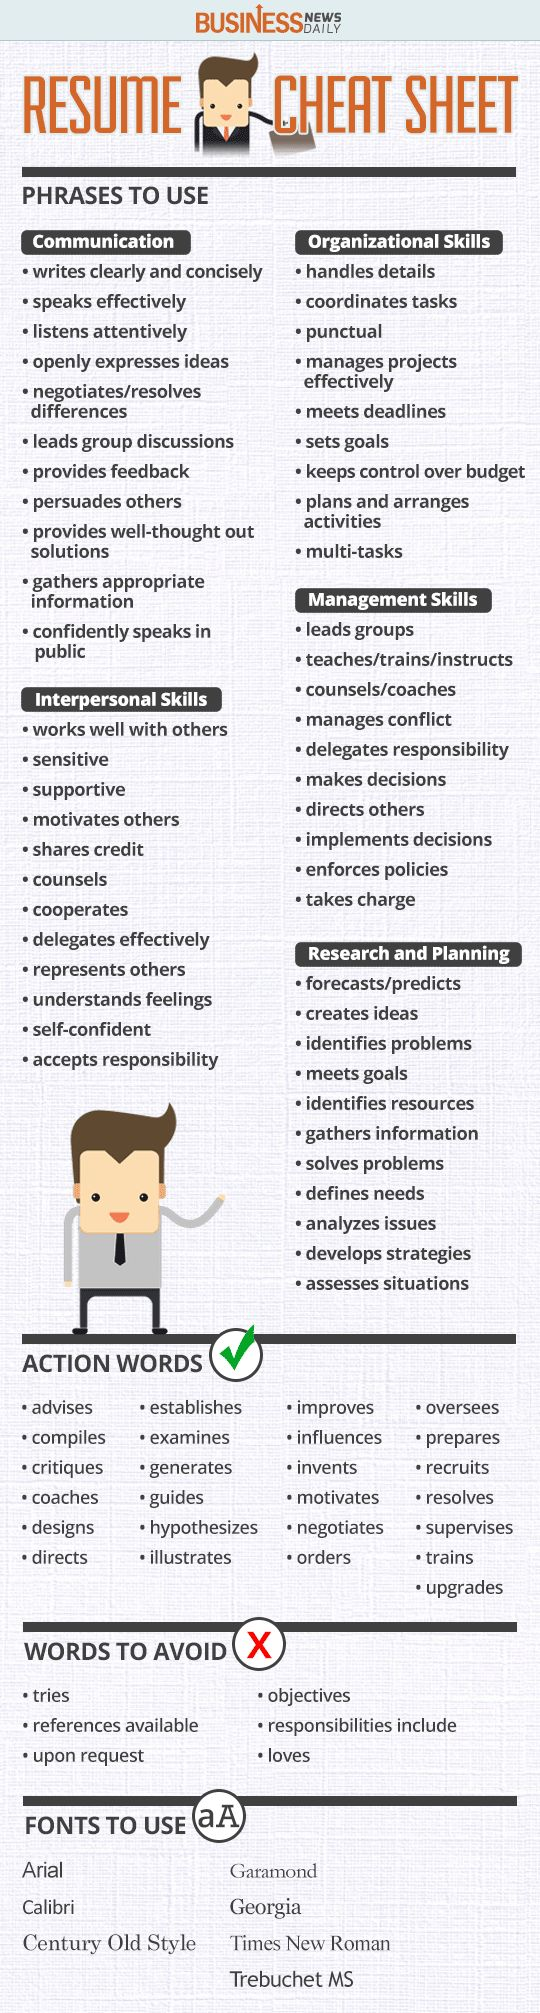 Opposenewapstandardsus  Ravishing  Ideas About Resume On Pinterest  Cv Format Resume Cv And  With Magnificent Resume Cheat Sheet Infographic Andrews Almost Done With A Complete Unit On Employment Which With Nice Scannable Resume Template Also It Project Manager Resume Sample In Addition What Should A Resume Cover Letter Say And Best Resume Writing As Well As Resume Maker For Free Additionally Career Resumes From Pinterestcom With Opposenewapstandardsus  Magnificent  Ideas About Resume On Pinterest  Cv Format Resume Cv And  With Nice Resume Cheat Sheet Infographic Andrews Almost Done With A Complete Unit On Employment Which And Ravishing Scannable Resume Template Also It Project Manager Resume Sample In Addition What Should A Resume Cover Letter Say From Pinterestcom